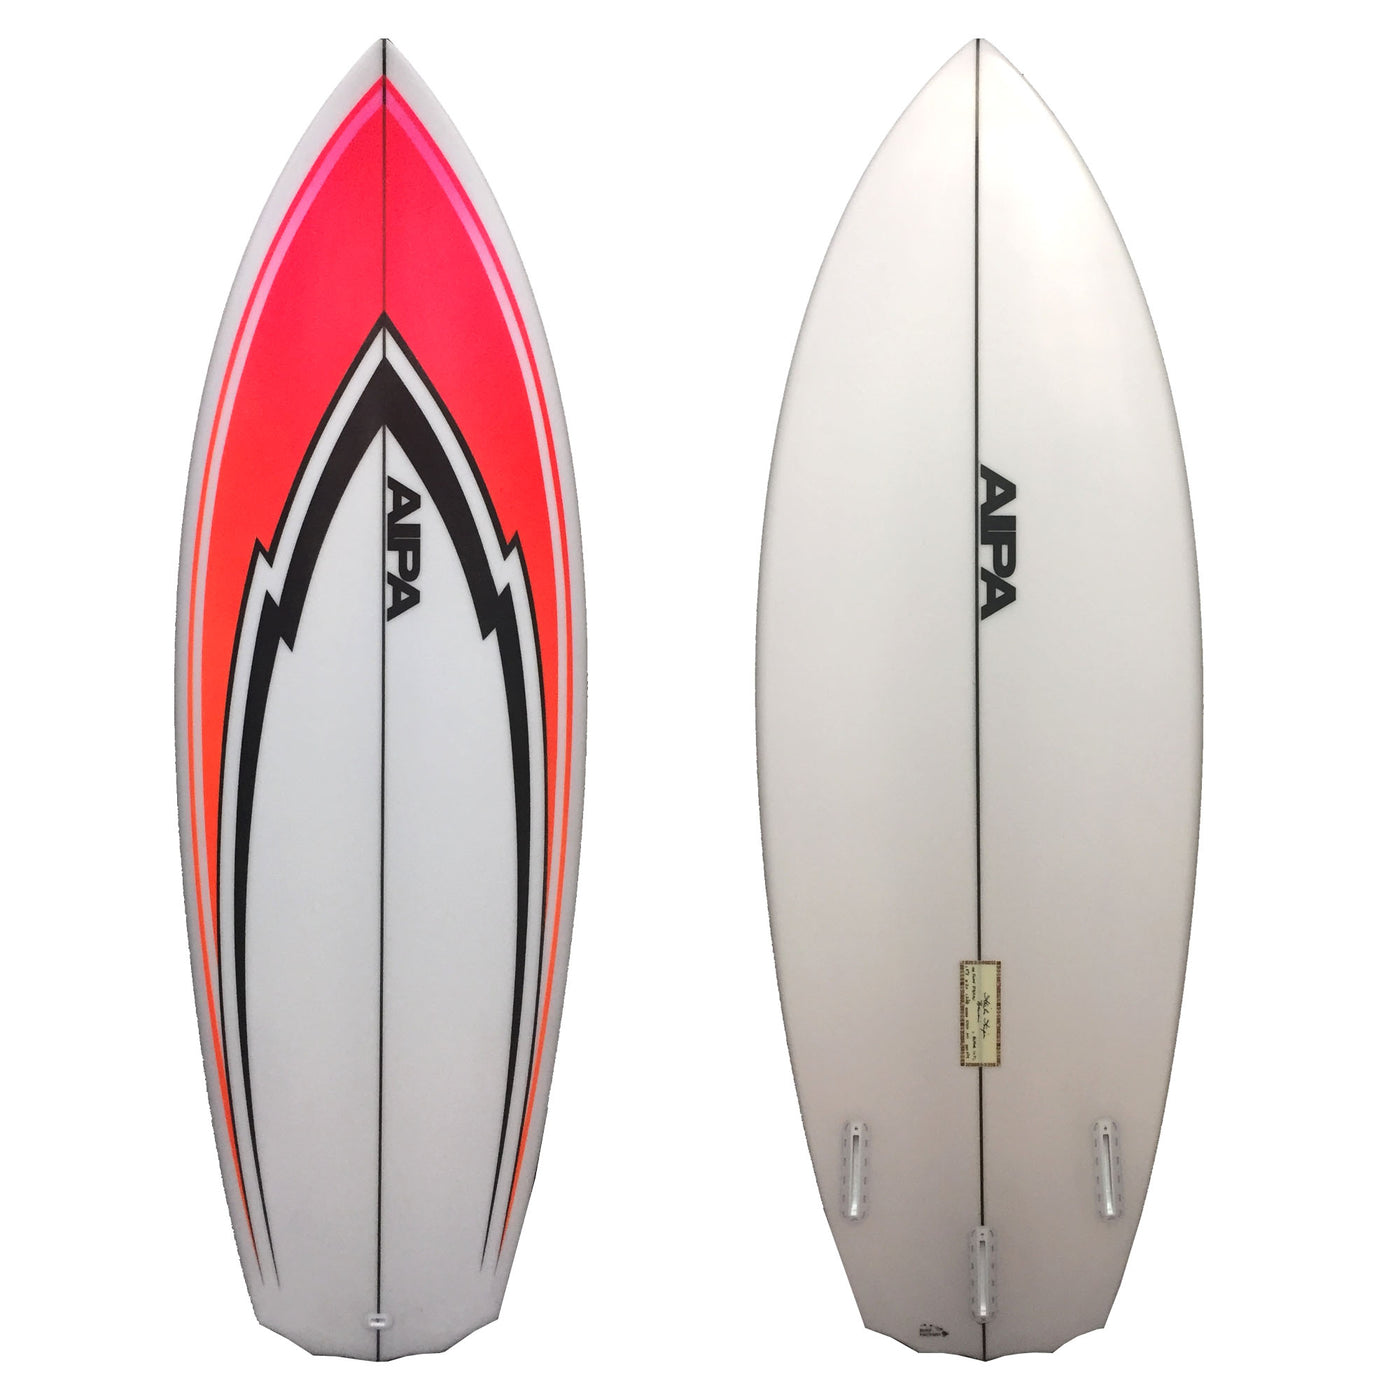 fc33ddb52d80 New & Used Surfboards | Wetsuits | Surf Clothing | Beach Accessories